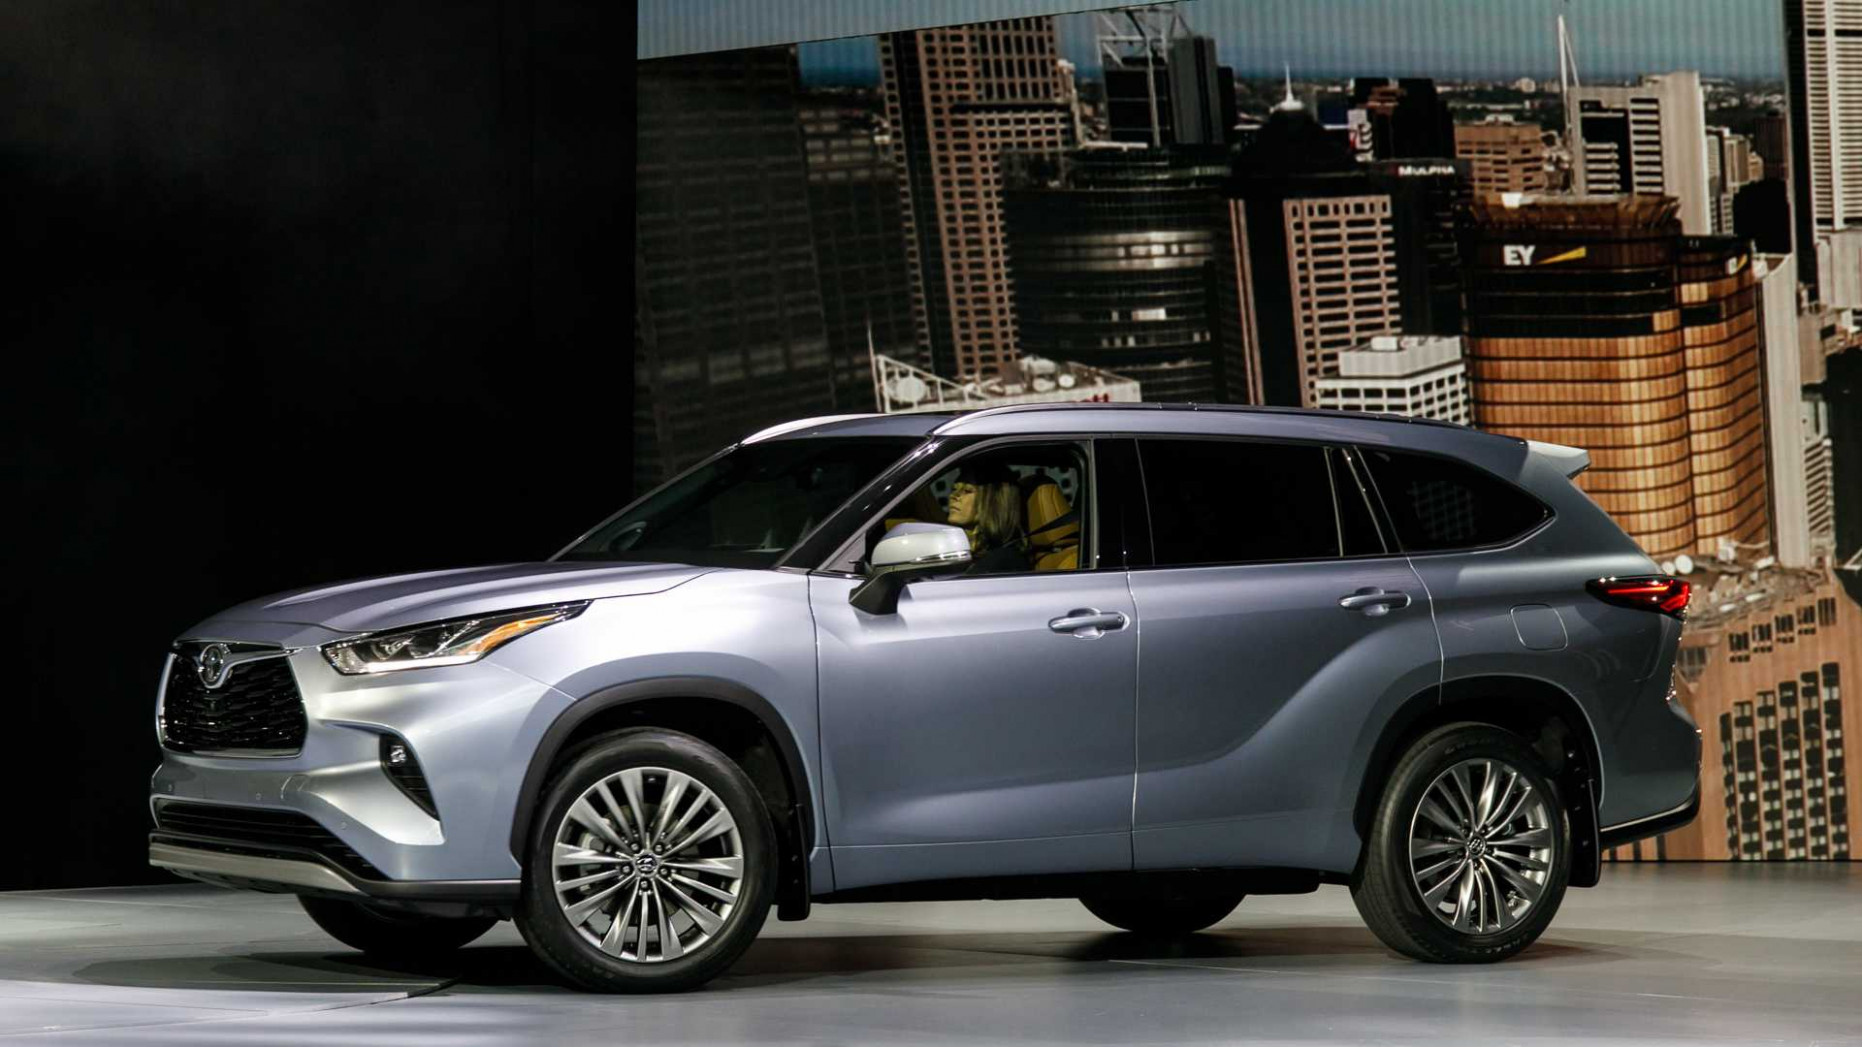 Spesification Will The 2022 Toyota Highlander Be Redesigned